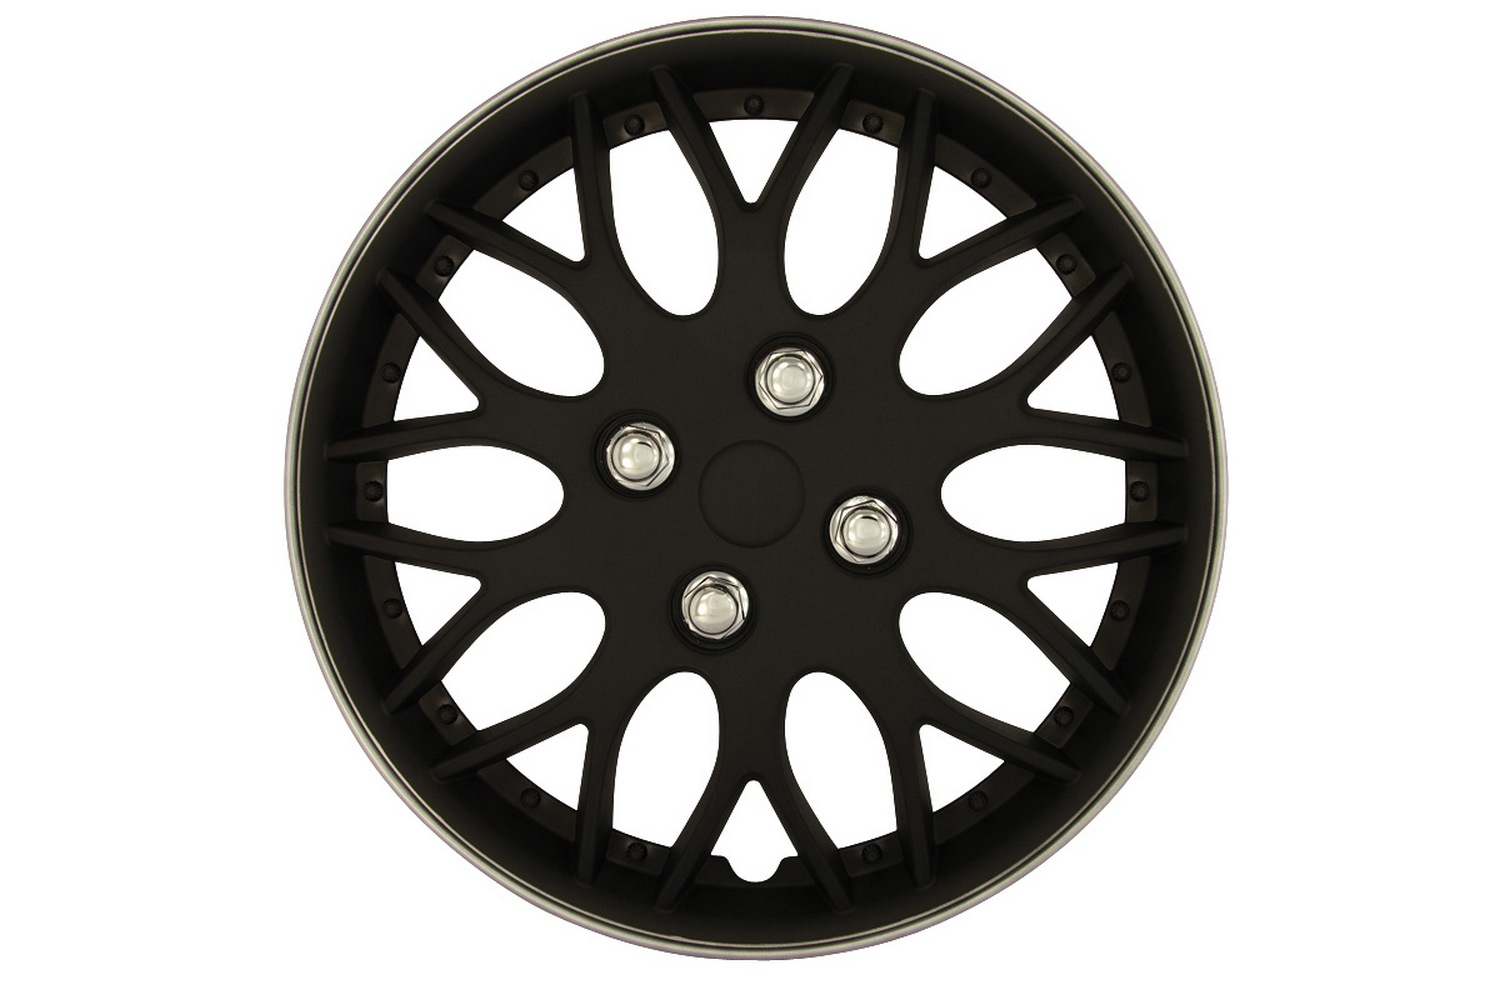 Wheel covers Missouri 15 inch set 4 pieces